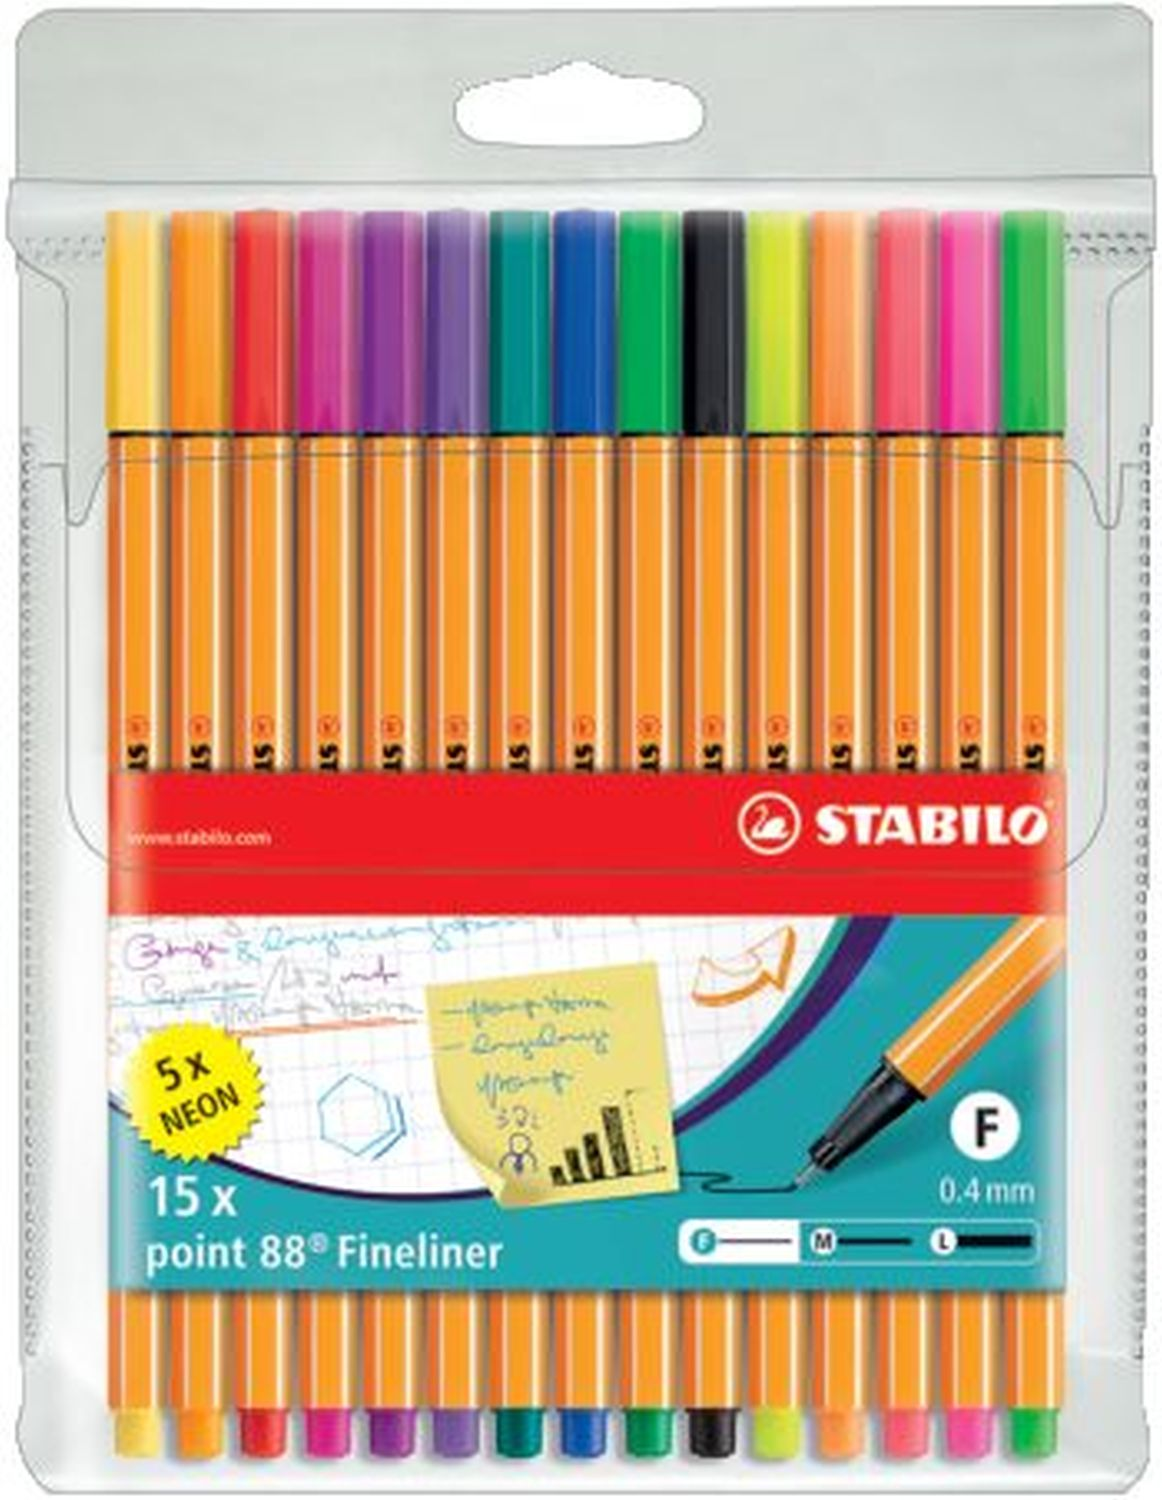 Stabilo point 88 Fineliner, 15er Packung